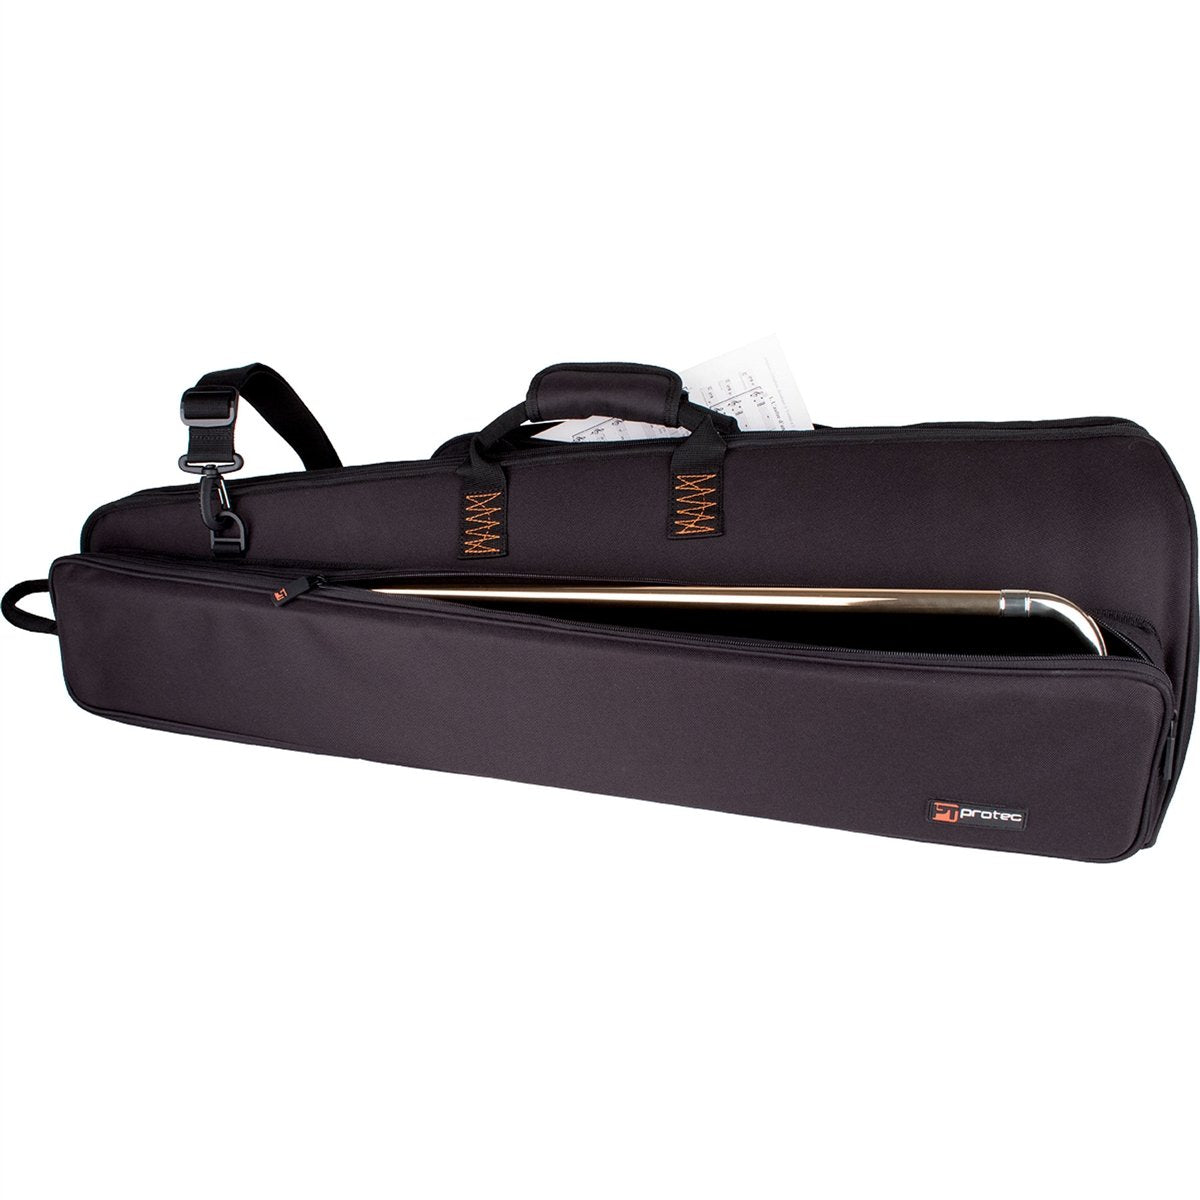 Protec - Tenor Trombone Explorer Gig Bag with Sheet Music Pocket-Case-Protec-Music Elements